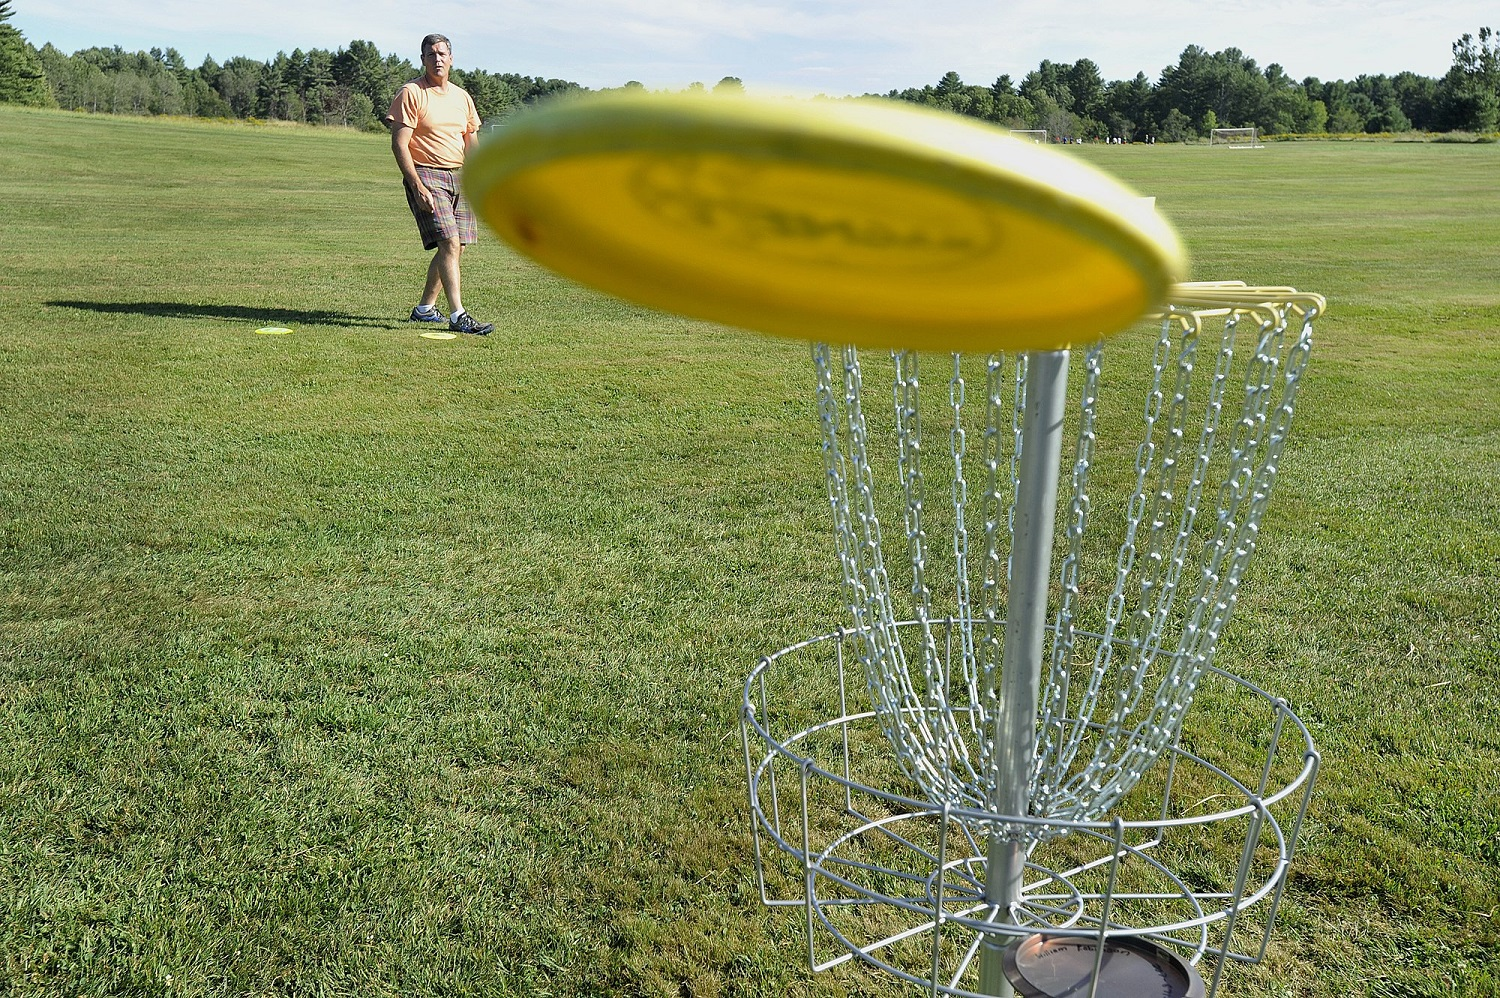 The biggest star in disc golf has just agreed to a 10-year, $10 million endorsement deal.